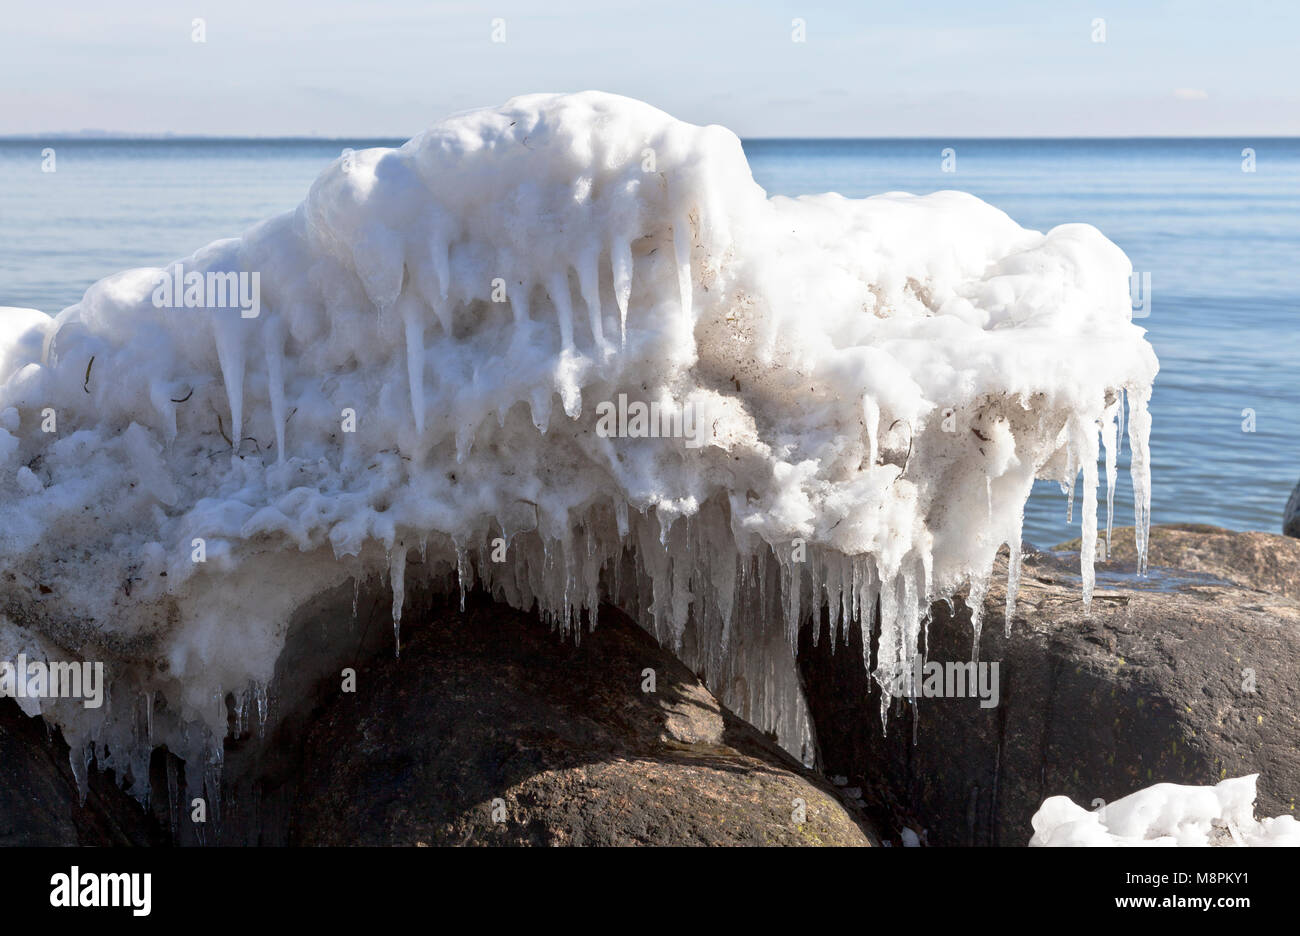 Melting ice formations and icicles on an early, sunny spring day on the coast at Skodsborg after a long  cold spell - Stock Image